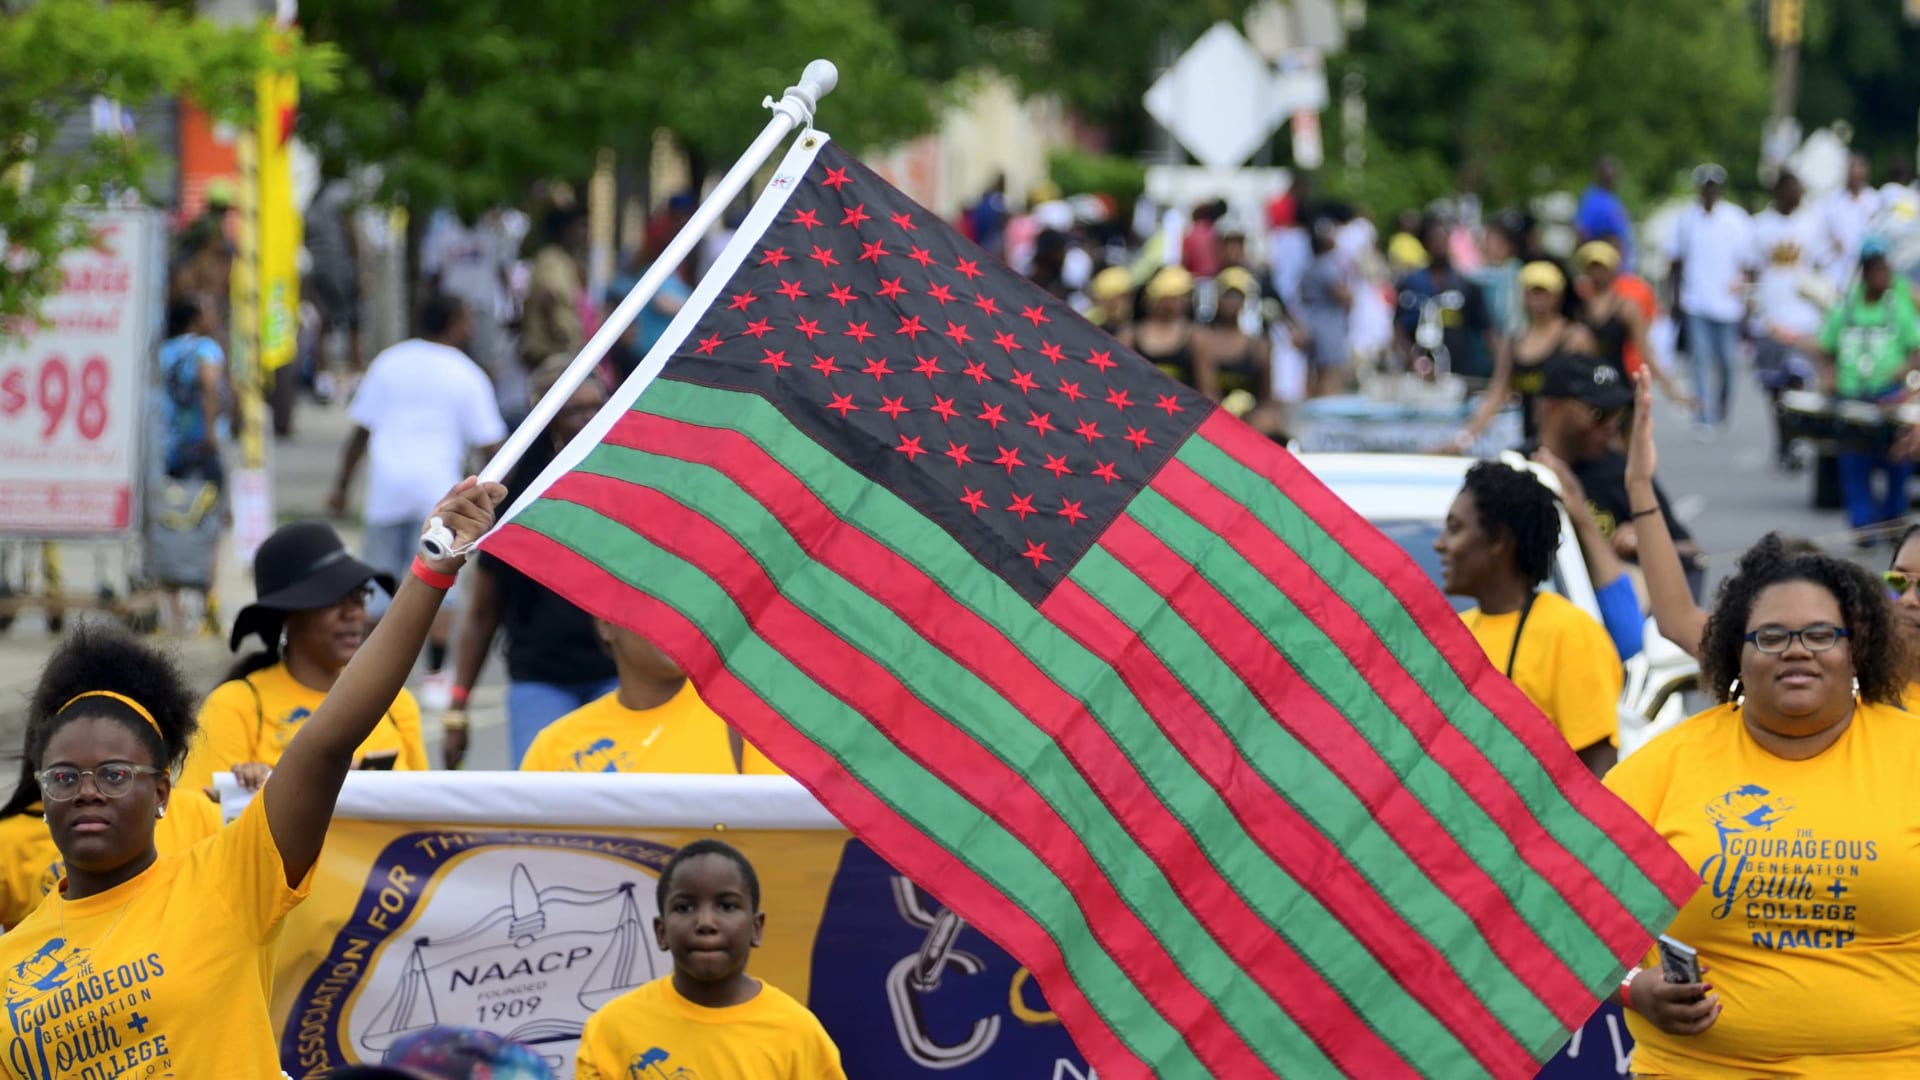 Elected officials, community leaders, youth, and drum and marching bands take part in the annual Juneteenth Paradem in Philadelphia.